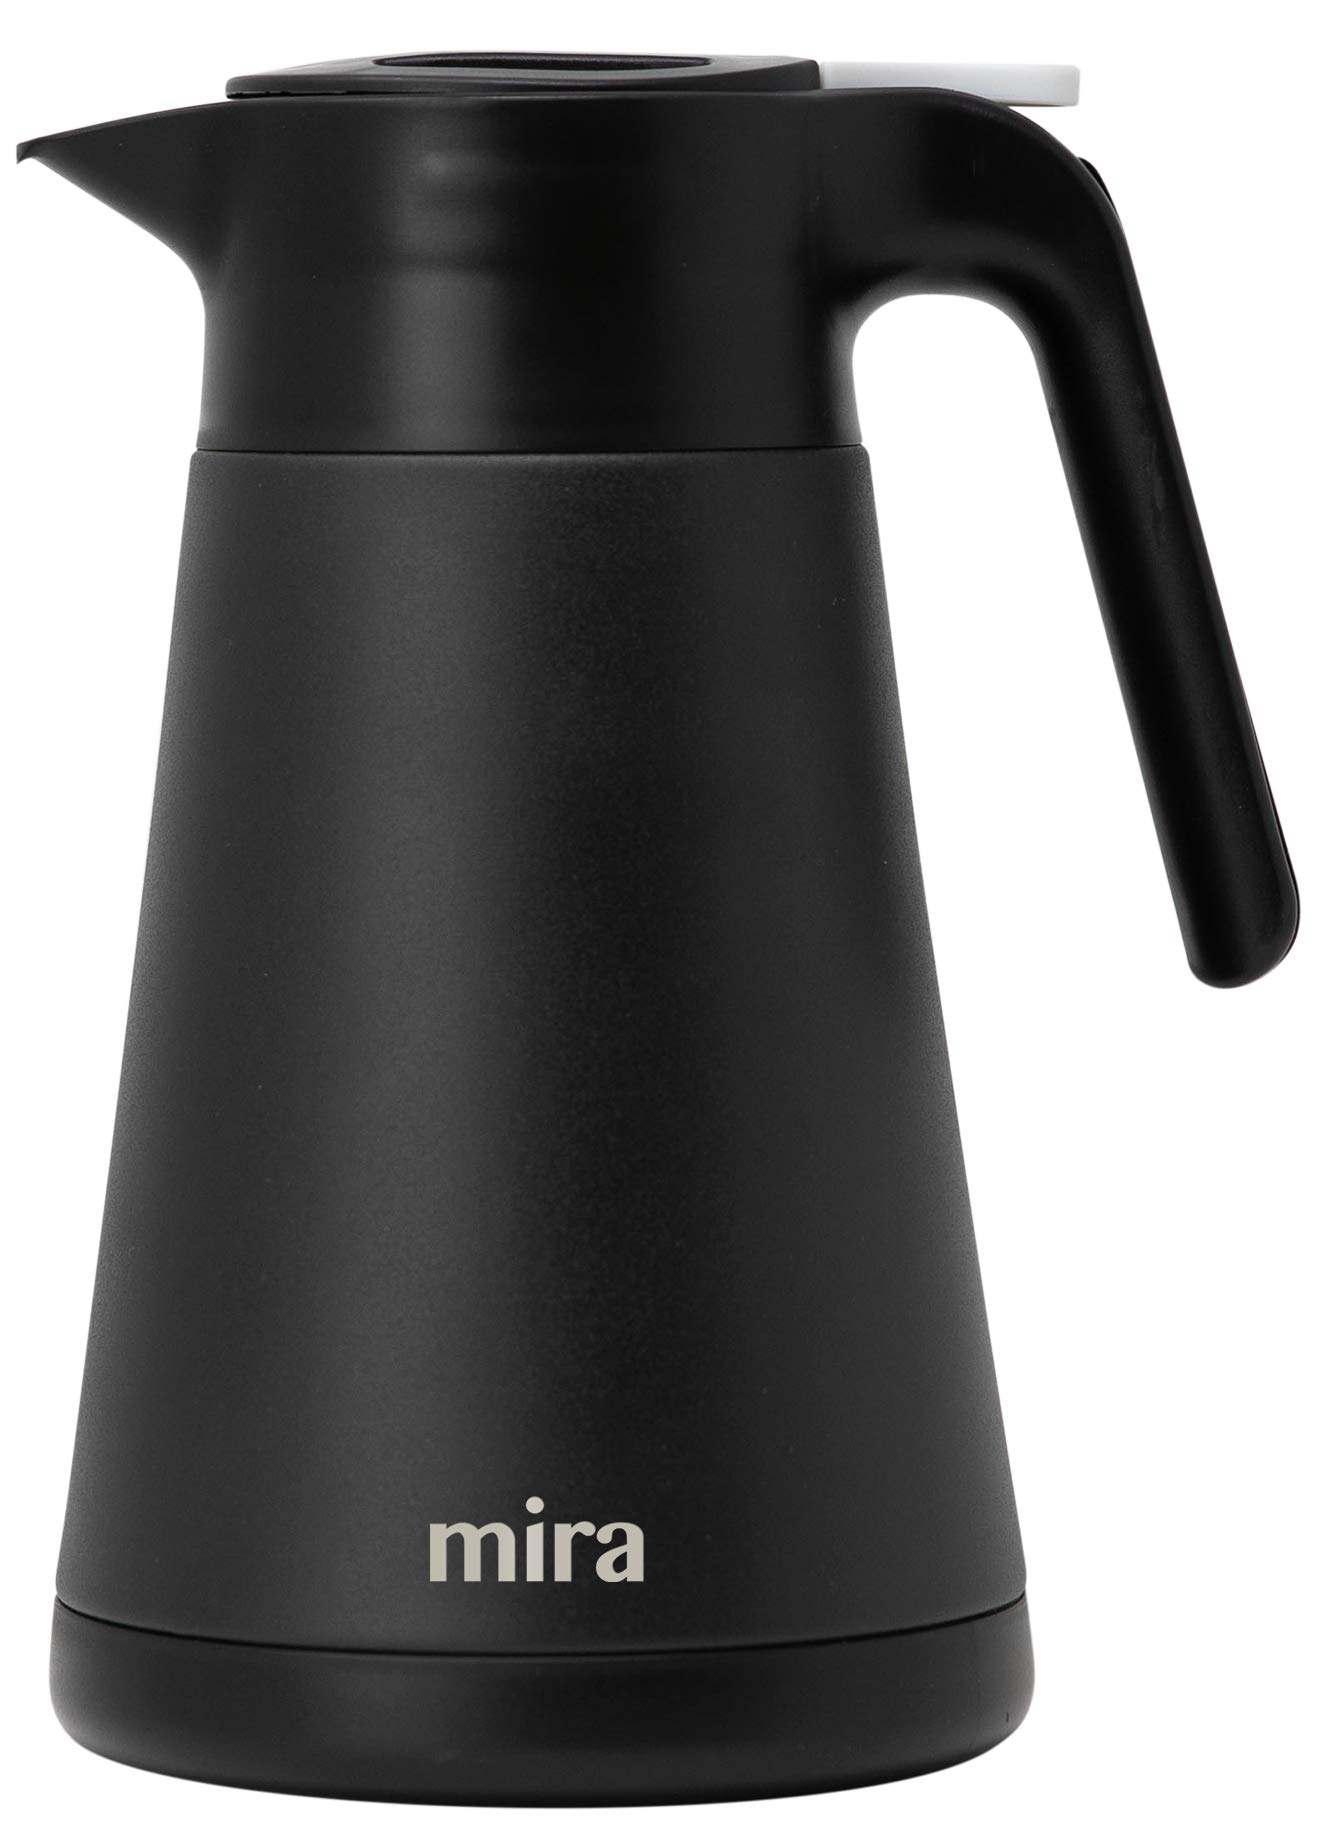 MIRA 40 oz (1.2 L) Stainless Steel Thermal Coffee Carafe | Double Walled Vacuum Insulated Pot | Coffee & Tea Server Stays Hot for 12 Hours or Cold for 24 hours | Black by MIRA